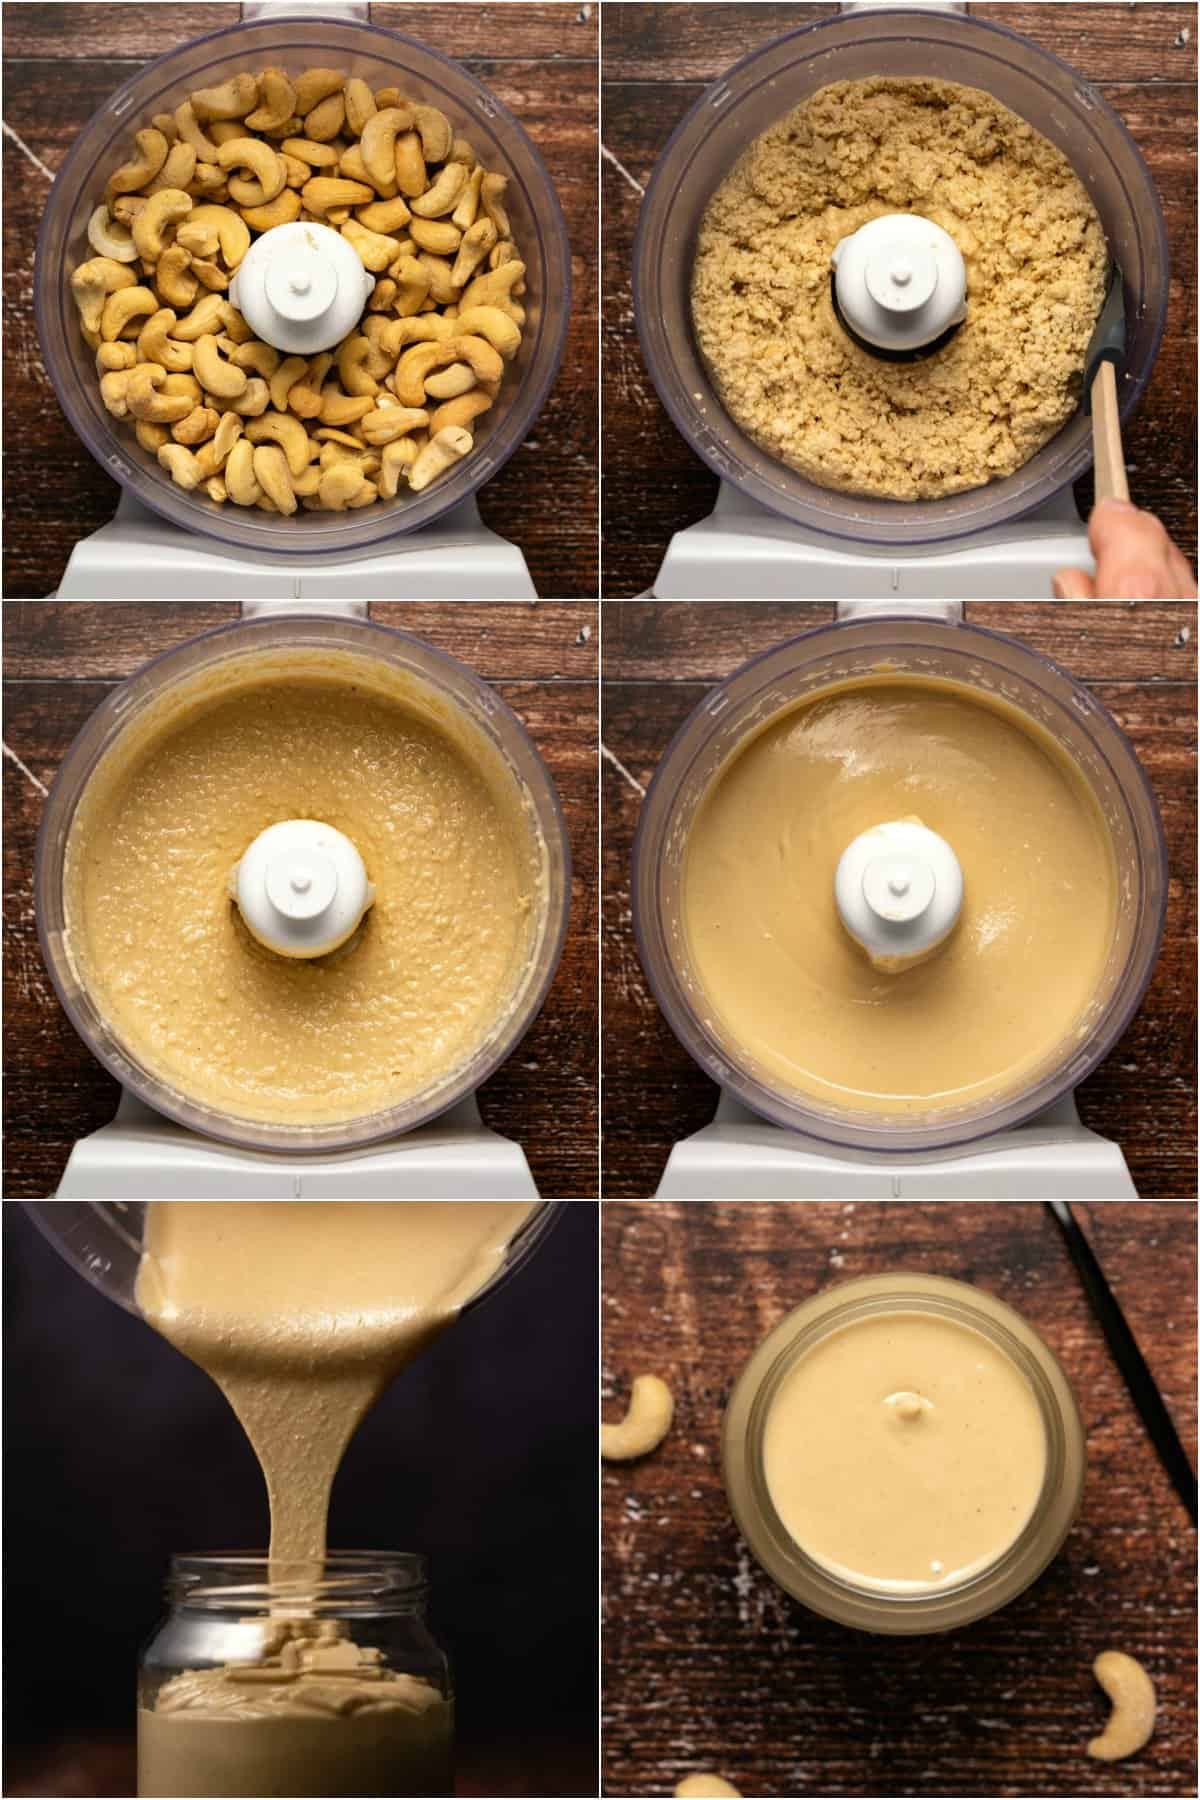 Step by step process photo collage of making cashew butter.